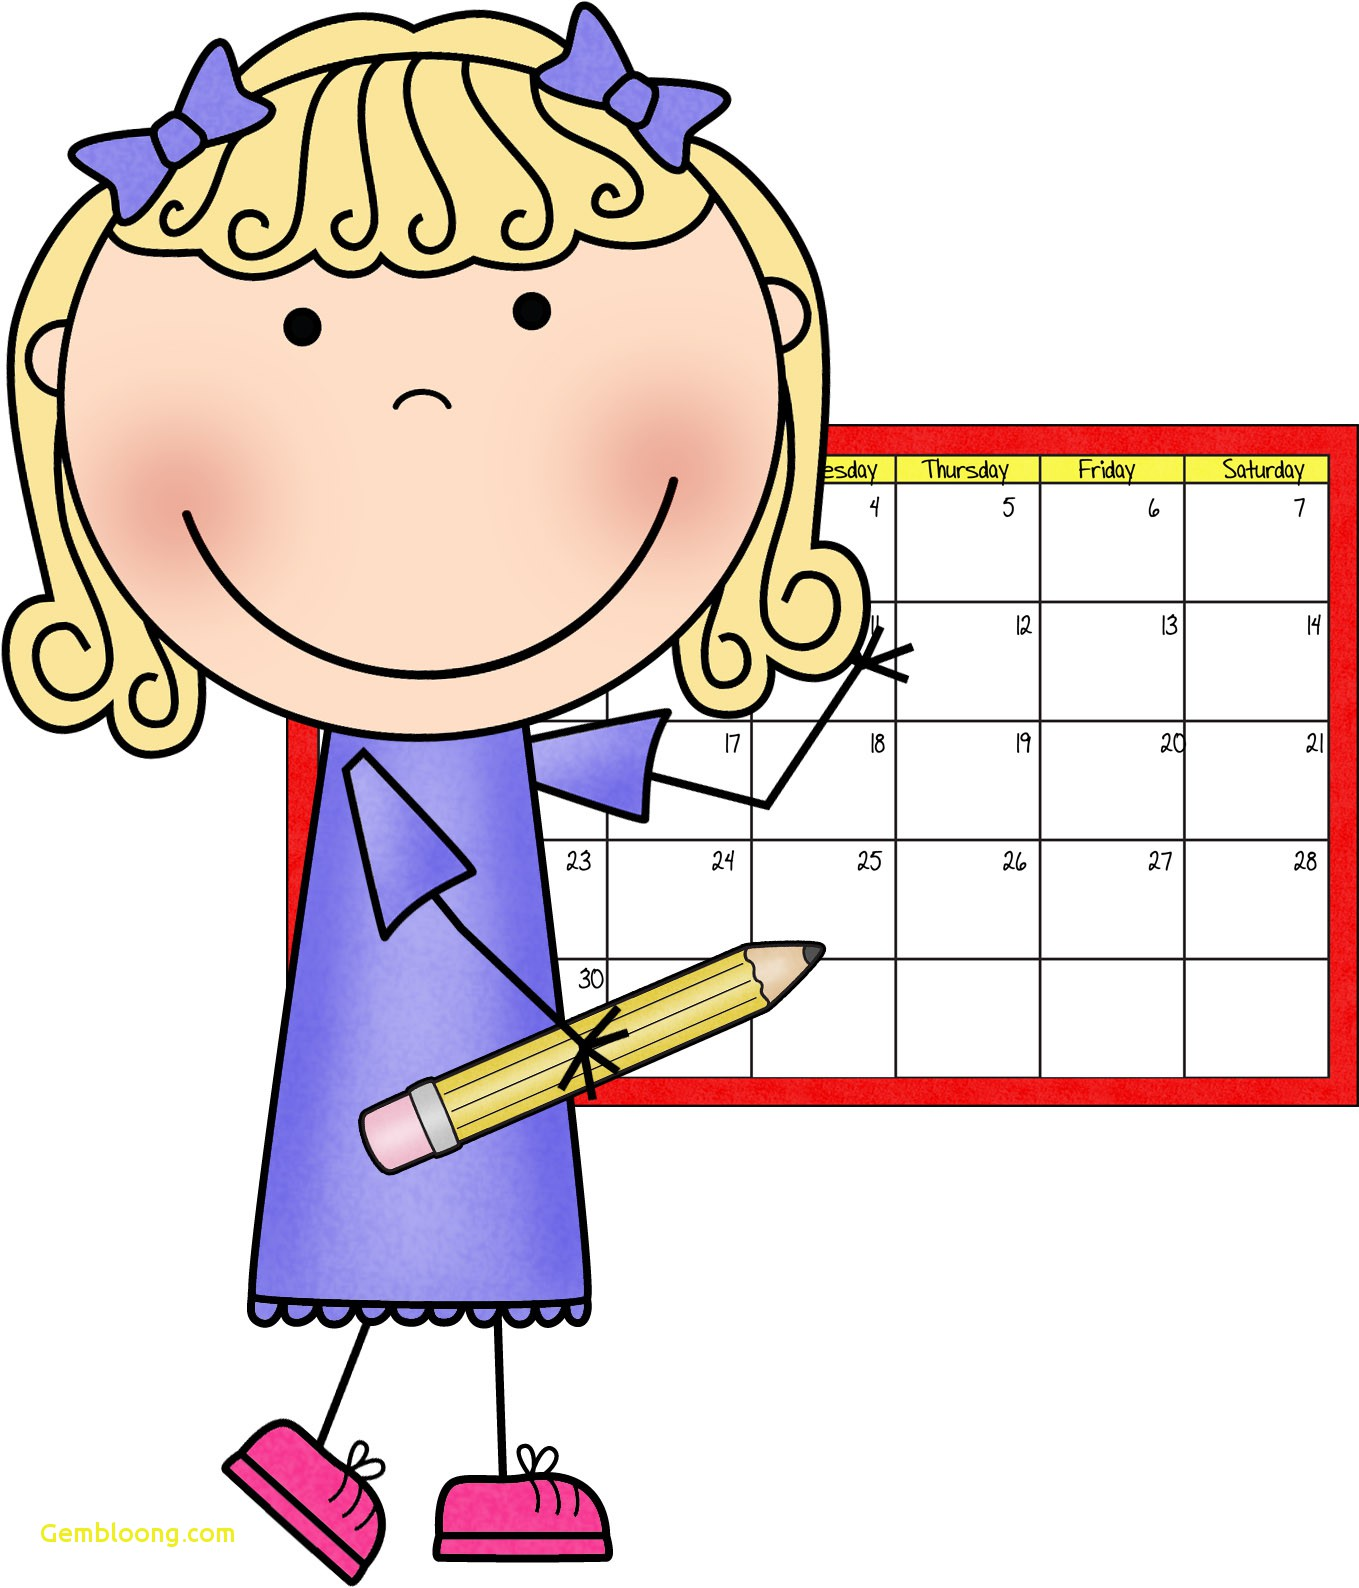 hight resolution of calendar helper clipart lovely making inclusion work 10 tips to help you before school begins